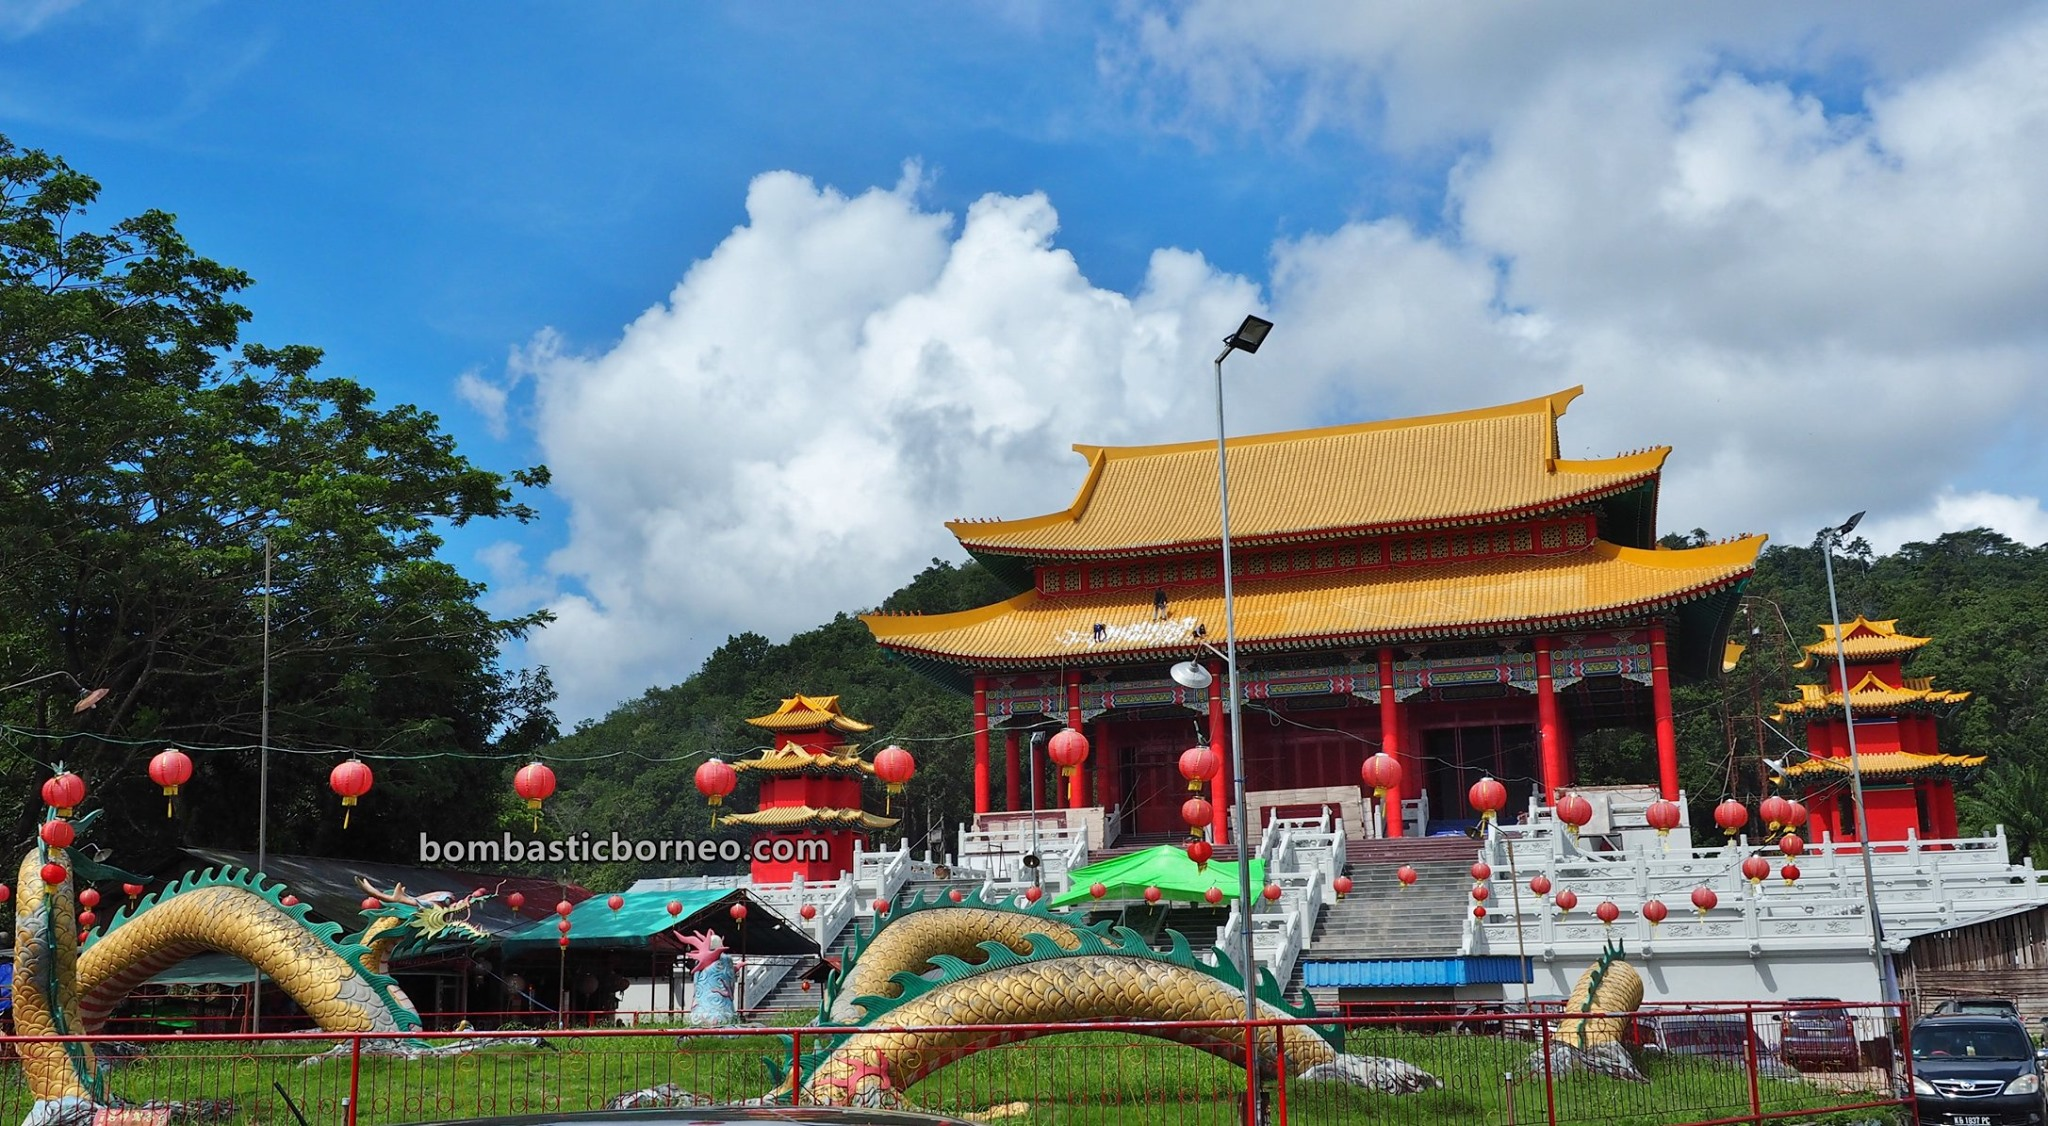 chinese temple, budaya, backpackers, destination, ethnic, TiongHoa, West Kalimantan, Tourism, tourist attraction, travel guide, Cross Border, Borneo, 穿越婆罗洲游踪, 印尼西加里曼丹, 山口洋旅游景点